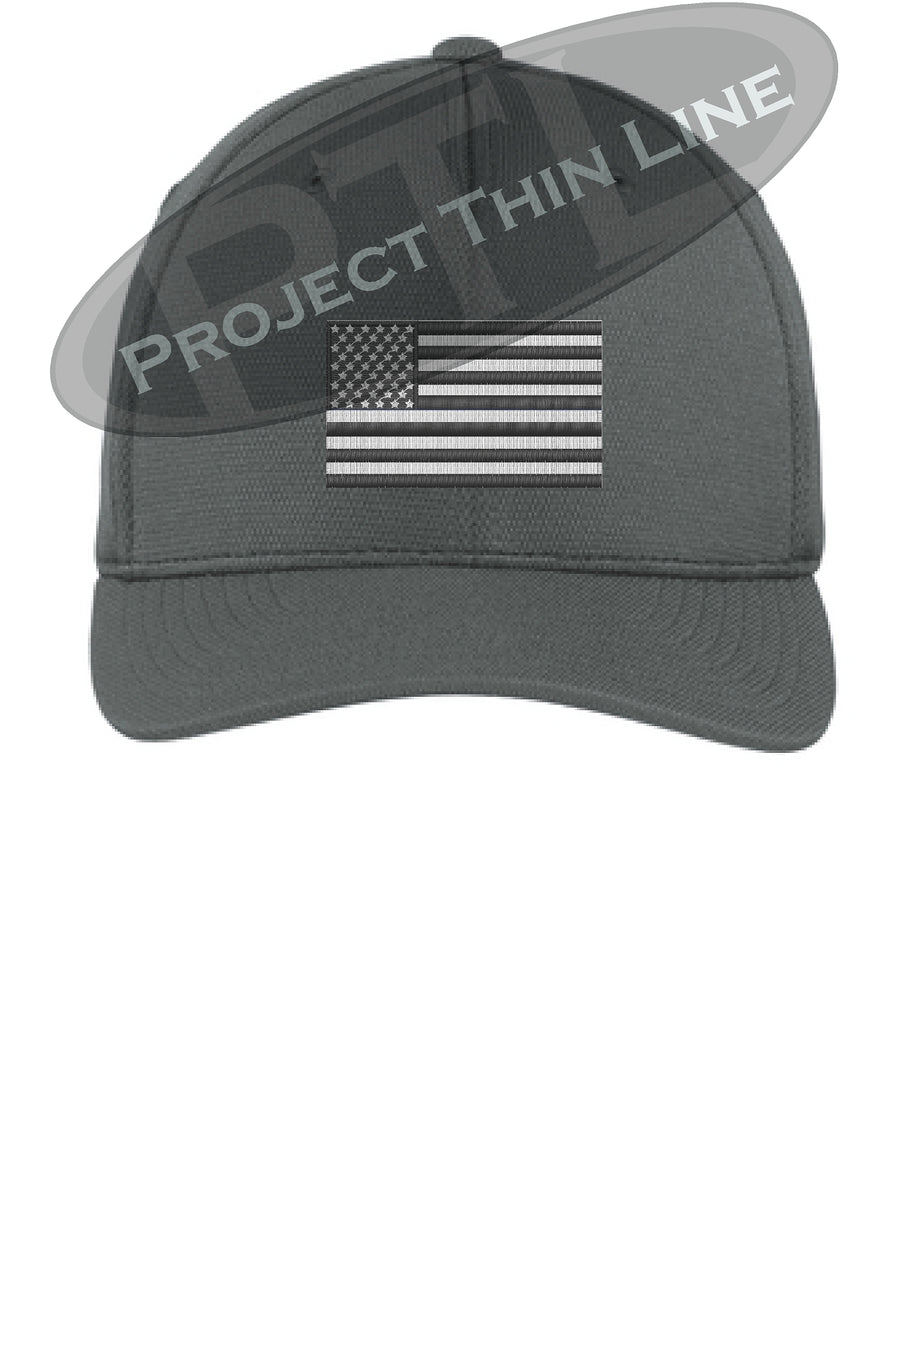 Black Embroidered Tactical / Subdued American Flag Flex Fit Fitted Hat